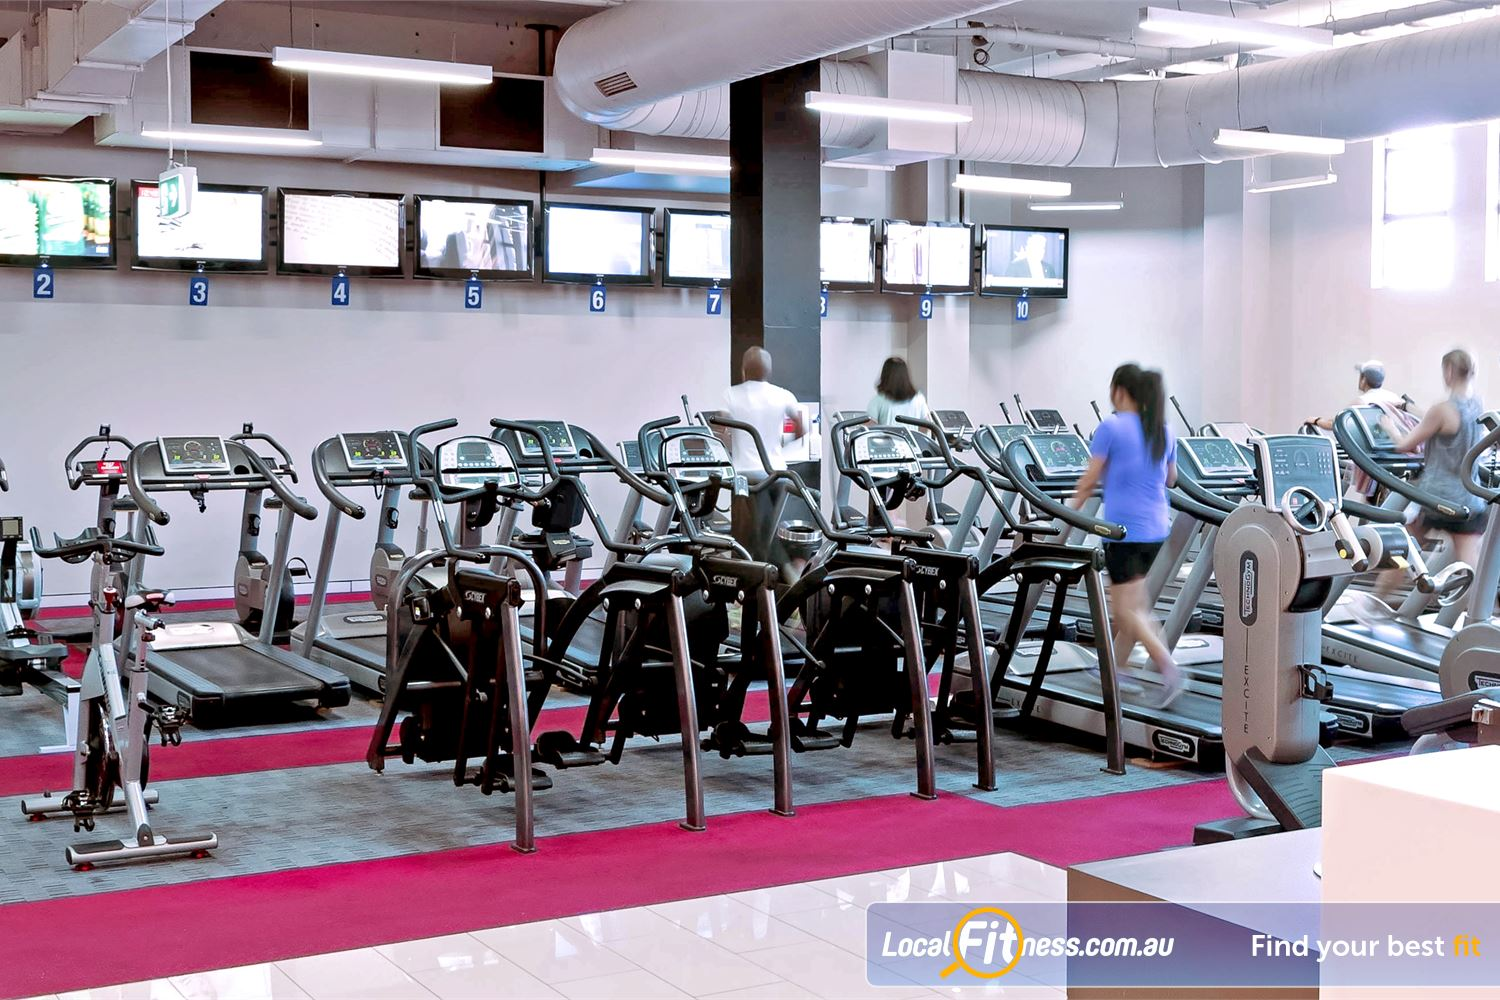 Fitness First Newtown Rows of state of the art treadmills, arc-trainers and rowers.